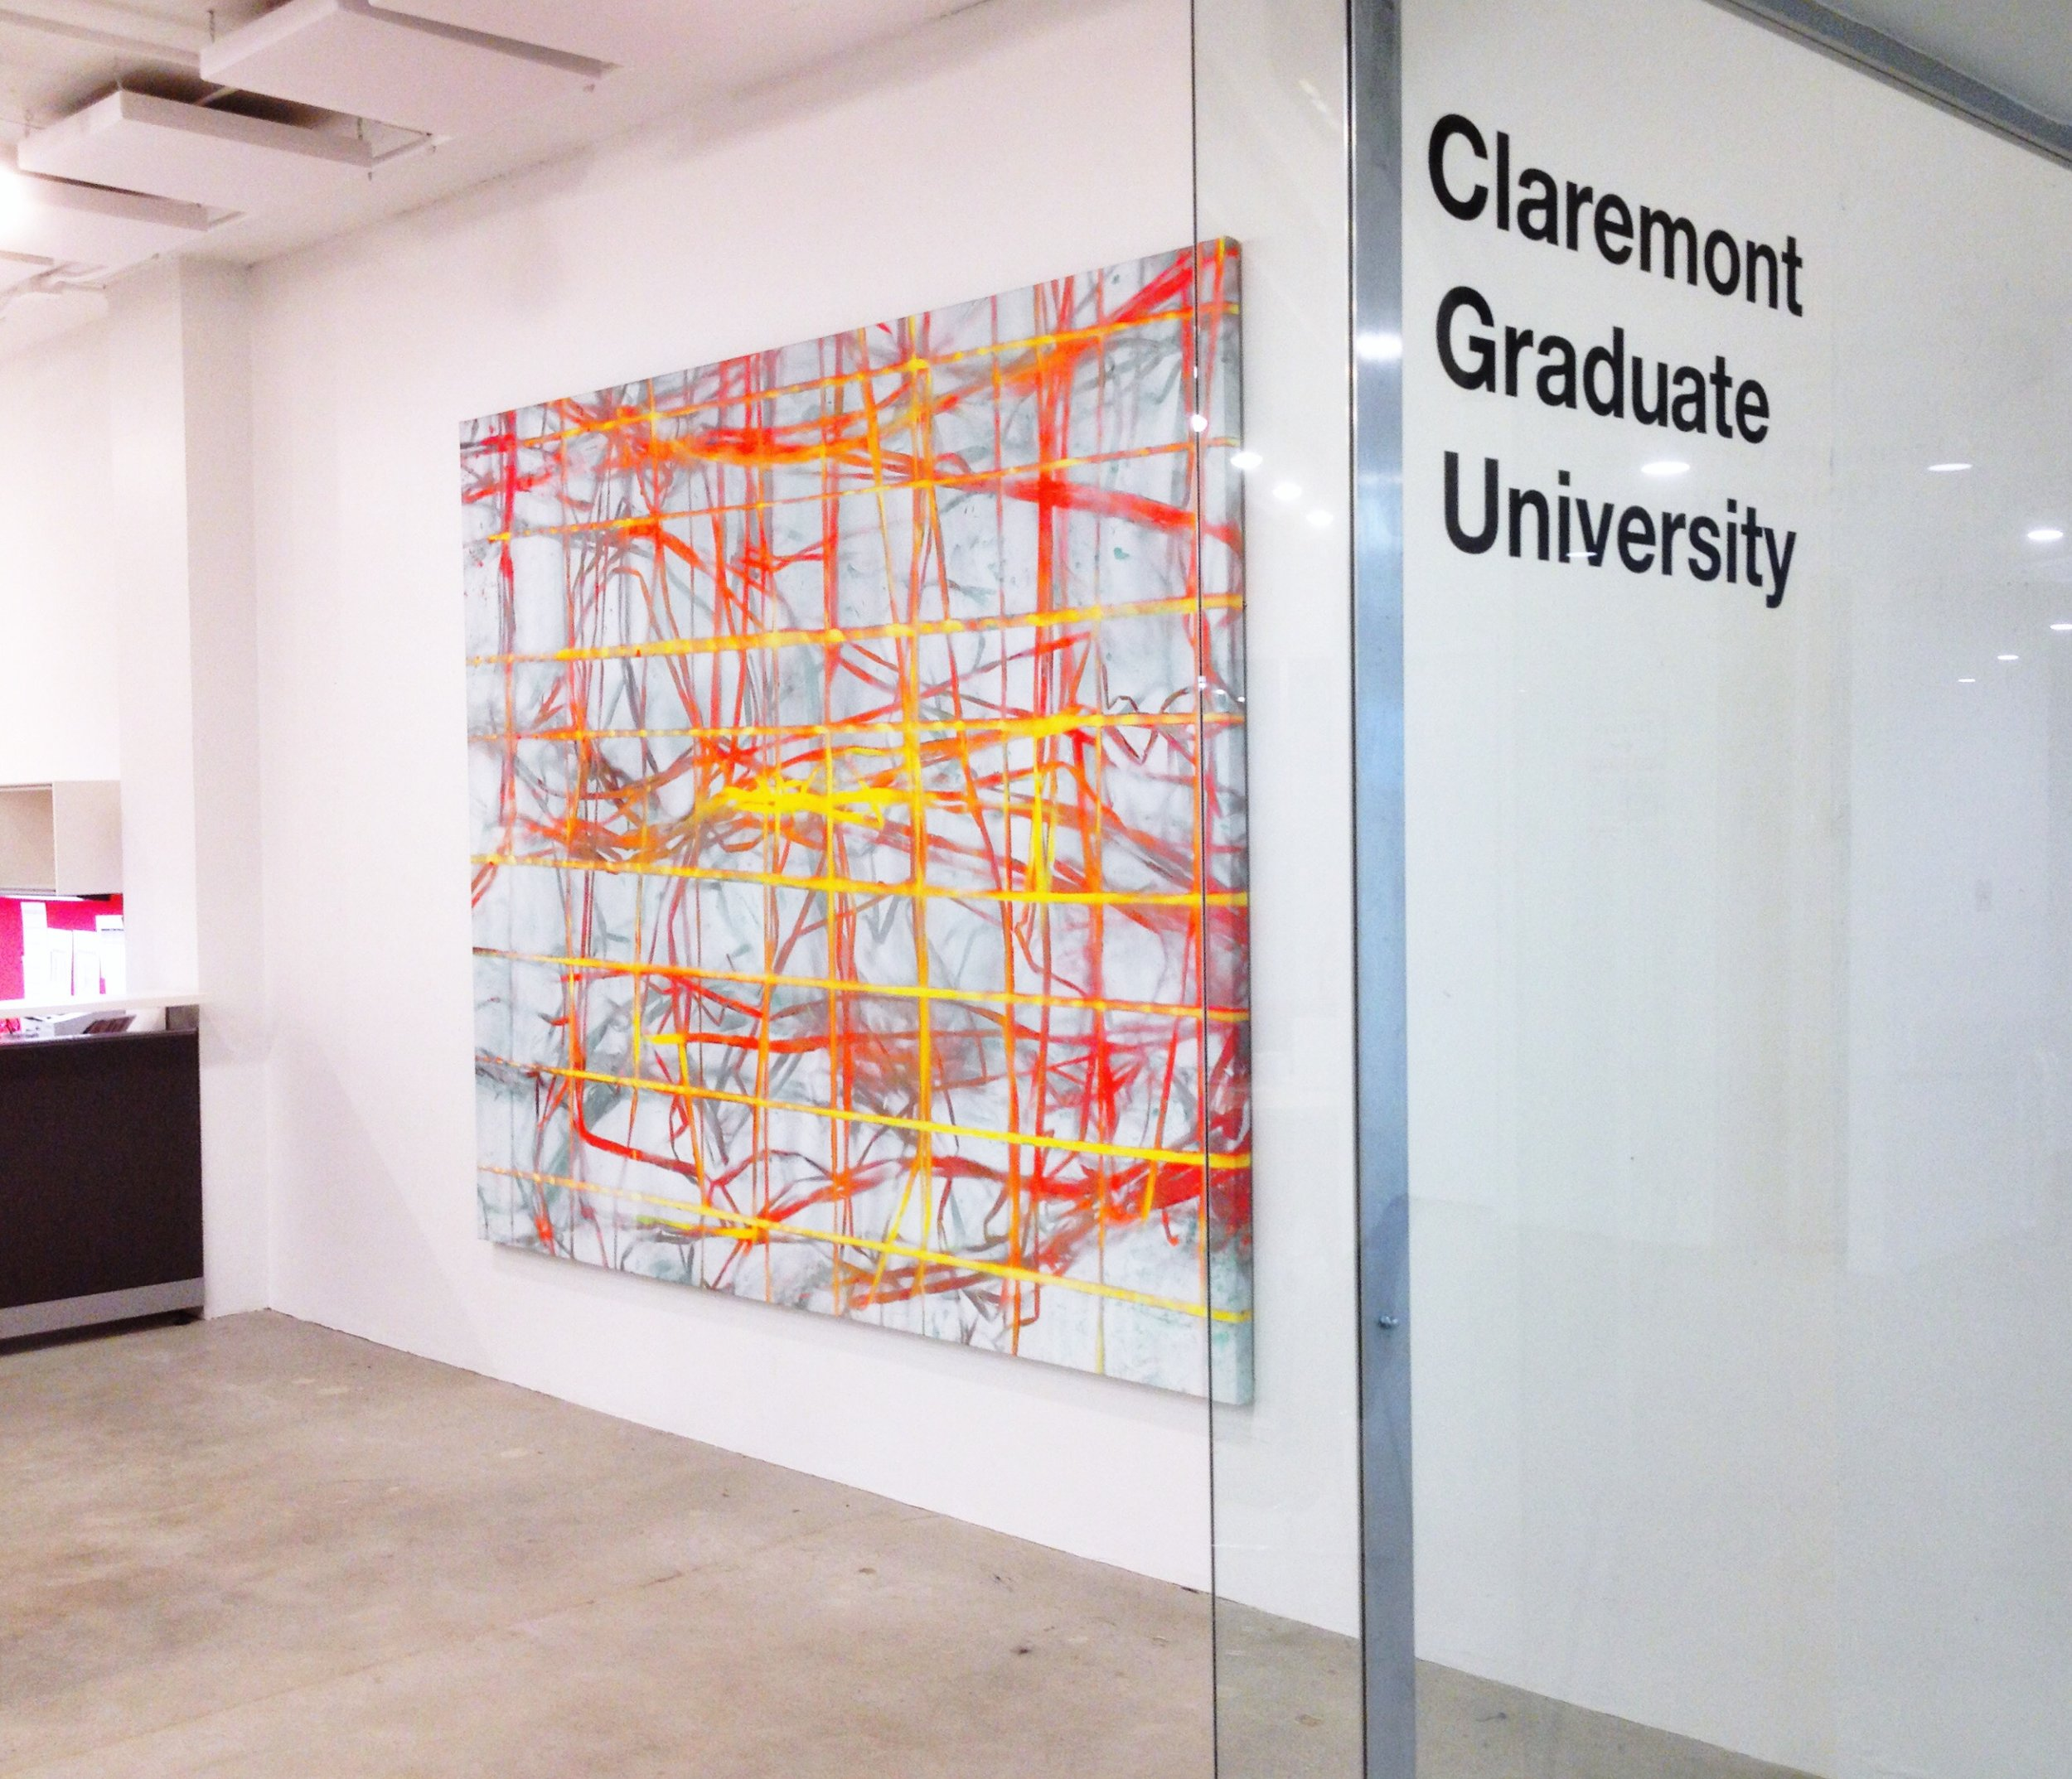 IAIN MUIRHEAD   1515  , 2015. Airborne pigment, acrylic binder, 10oz cotton duck canvas, white titanium gesso, milled pine, 3mm staples, #8 screws. 89 x 111 inches. Installation view Claremont Graduate University at The Reef, Los Angeles.